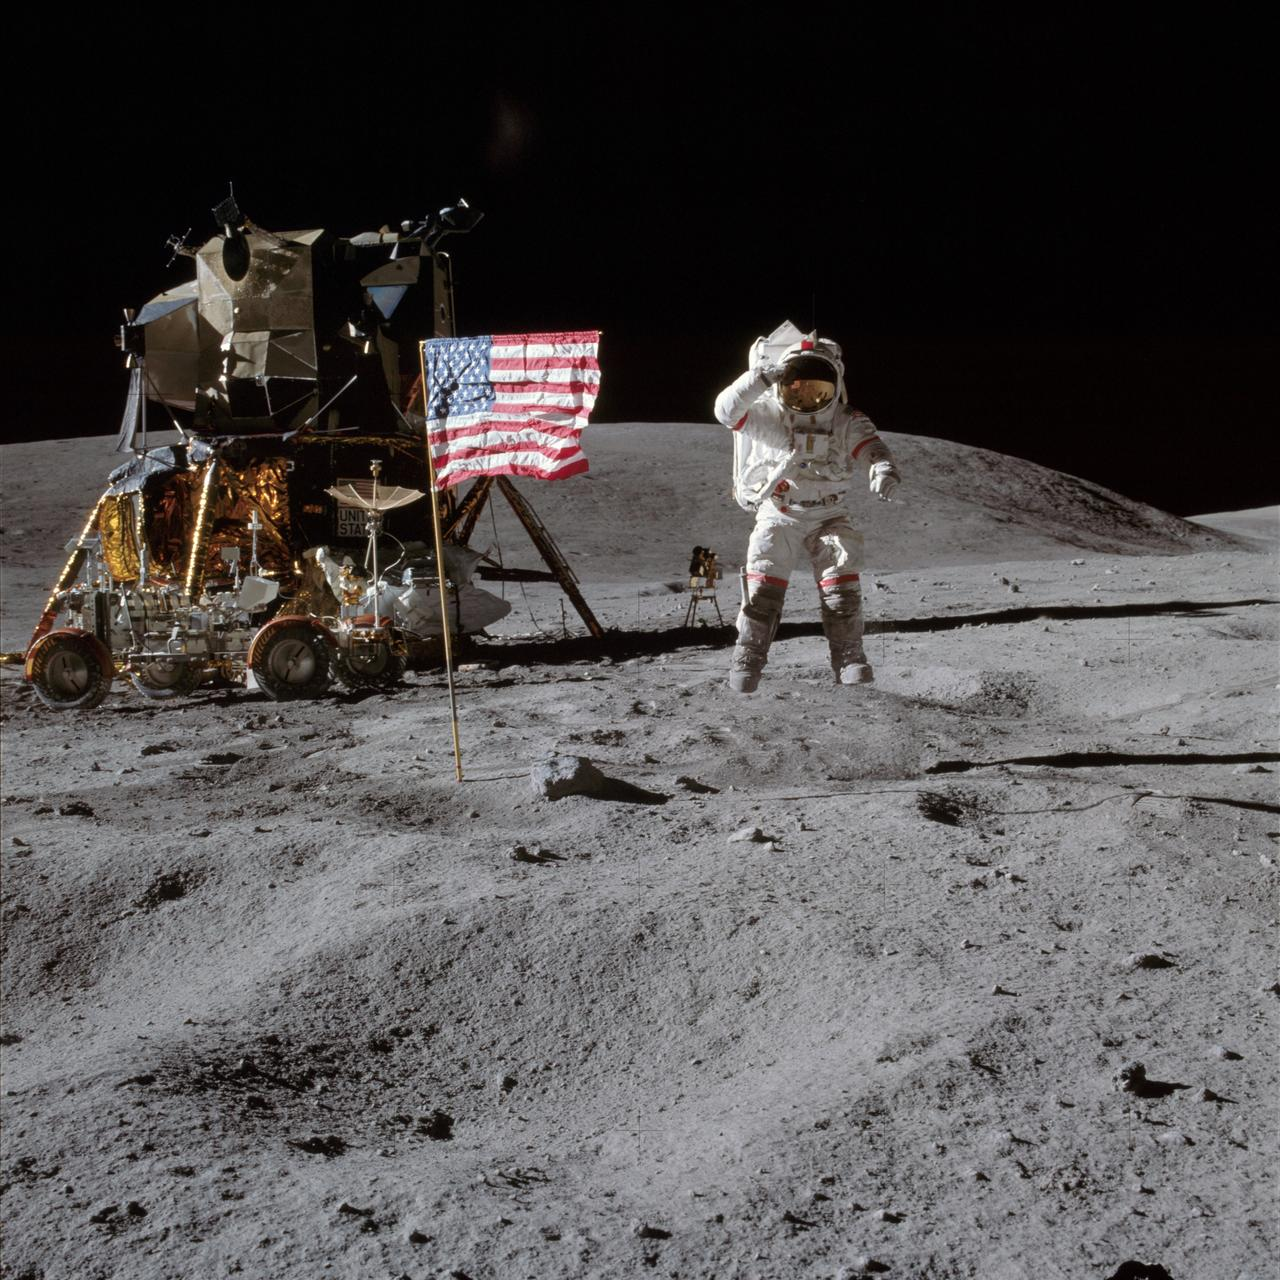 "AS16-113-18339 (21 April 1972) --- Astronaut John W. Young, commander of the Apollo 16 lunar landing mission, leaps from the lunar surface as he salutes the United States flag at the Descartes landing site during the first Apollo 16 extravehicular activity (EVA).  Astronaut Charles M. Duke Jr., lunar module pilot, took this picture. The Lunar Module (LM) ""Orion"" is on the left. The Lunar Roving Vehicle (LRV) is parked beside the LM. The object behind Young (in the shade of the LM) is the Far Ultraviolet Camera/Spectrograph (FUC/S). Stone Mountain dominates the background in this lunar scene. While astronauts Young and Duke descended in the LM to explore the Descartes highlands landing site on the moon, astronaut Thomas K. Mattingly II, command module pilot, remained with the Command and Service Modules (CSM) ""Casper"" in lunar orbit."